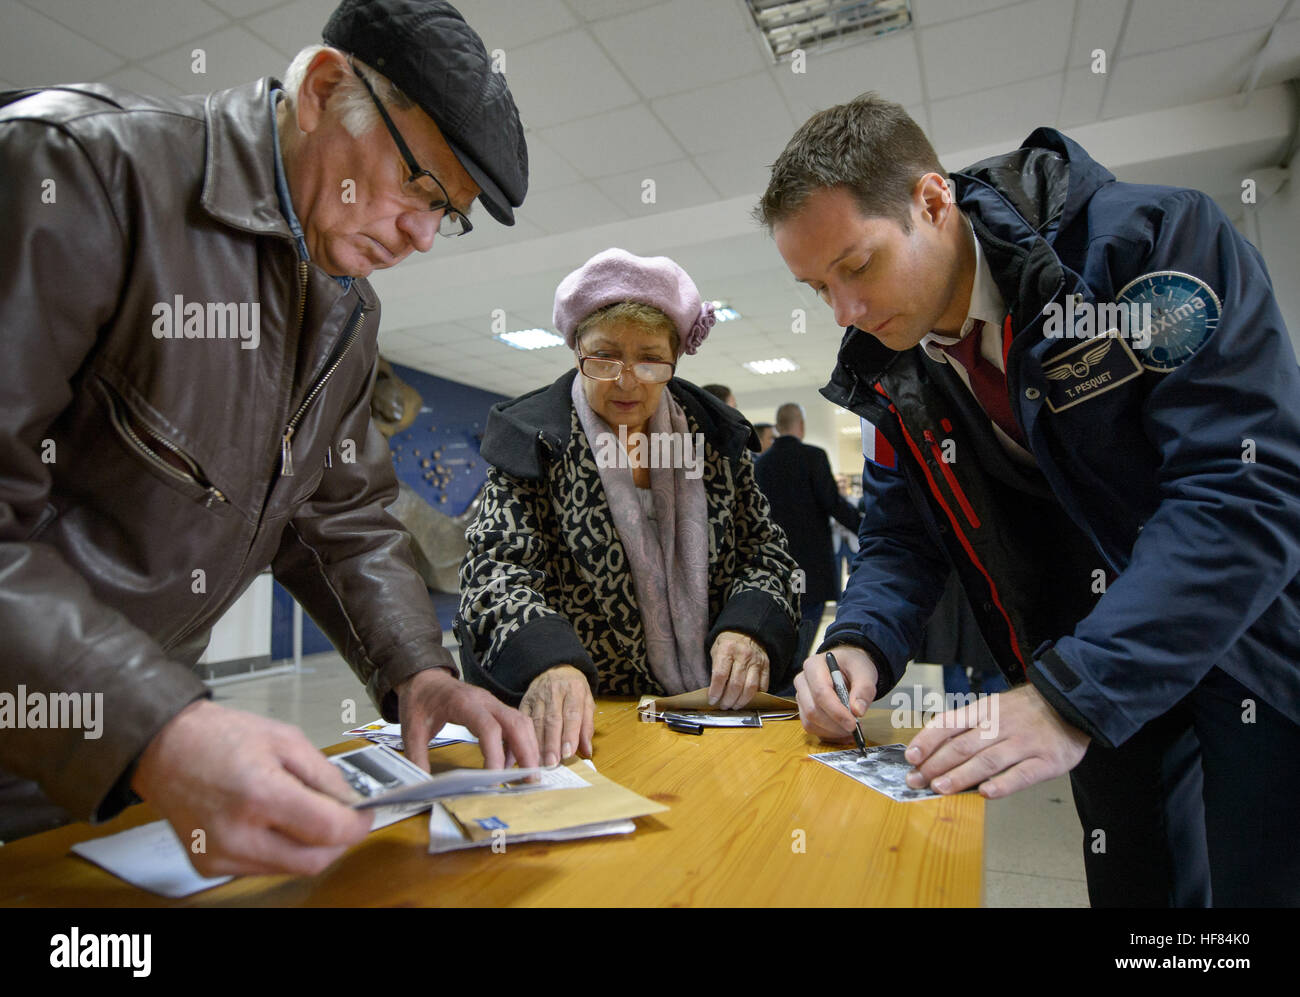 Expedition 50 ESA astronaut Thomas Pesquet signs photographs after visiting the museum at the Gagarin Cosmonaut - Stock Image